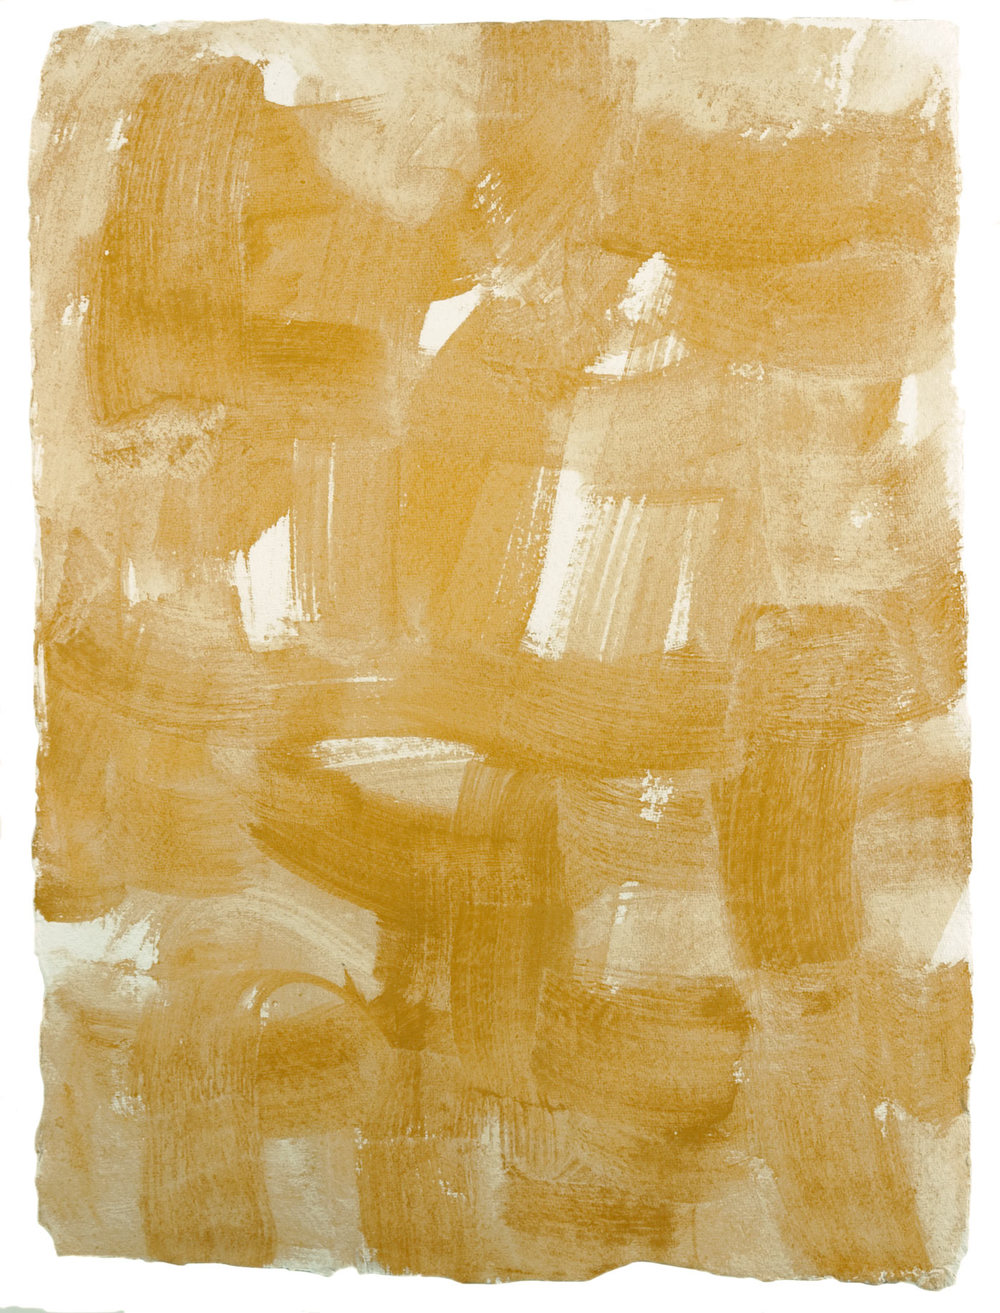 Nantucket 10 , 2011 casein on cotton rag paper 16.5 x 12.25 in.